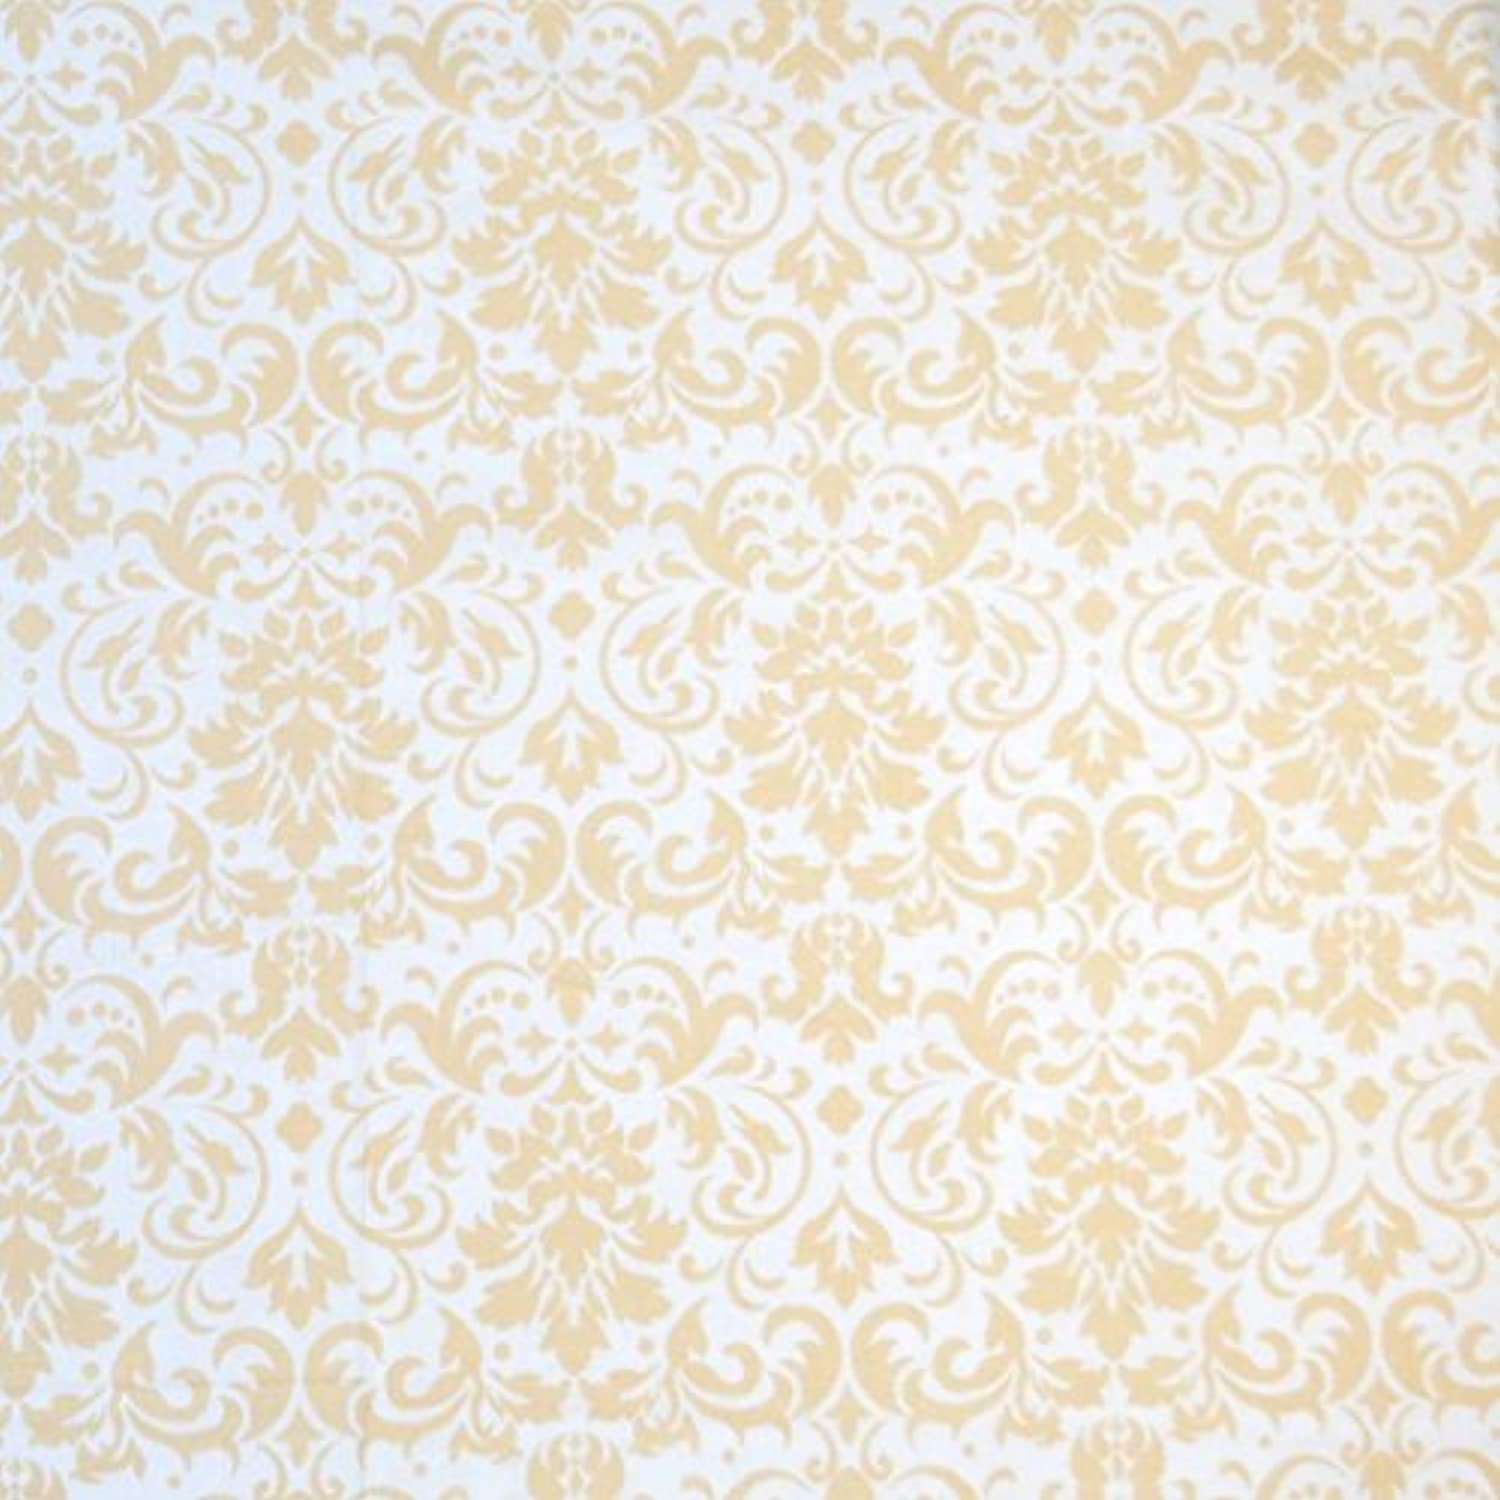 SheetWorld Fitted Basket Sheet - Cream Damask - Made In USA by sheetworld